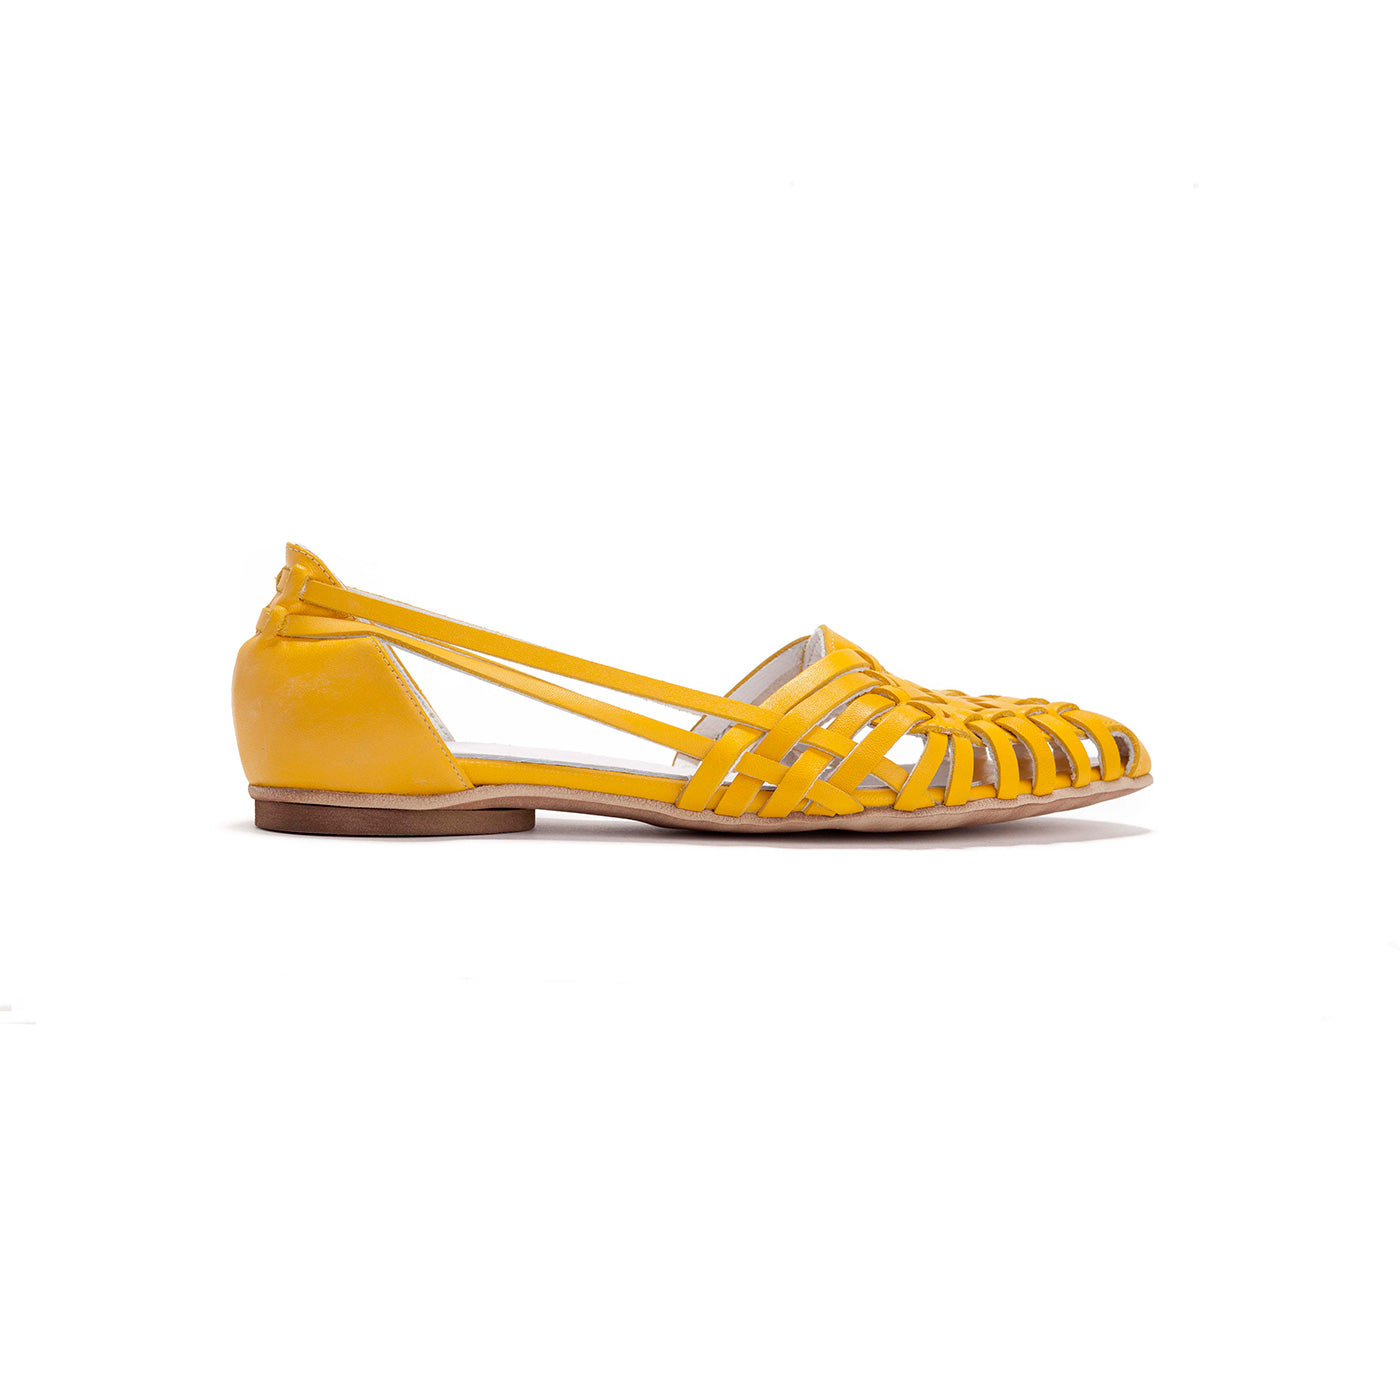 Sara - Yellow Leather Sandals